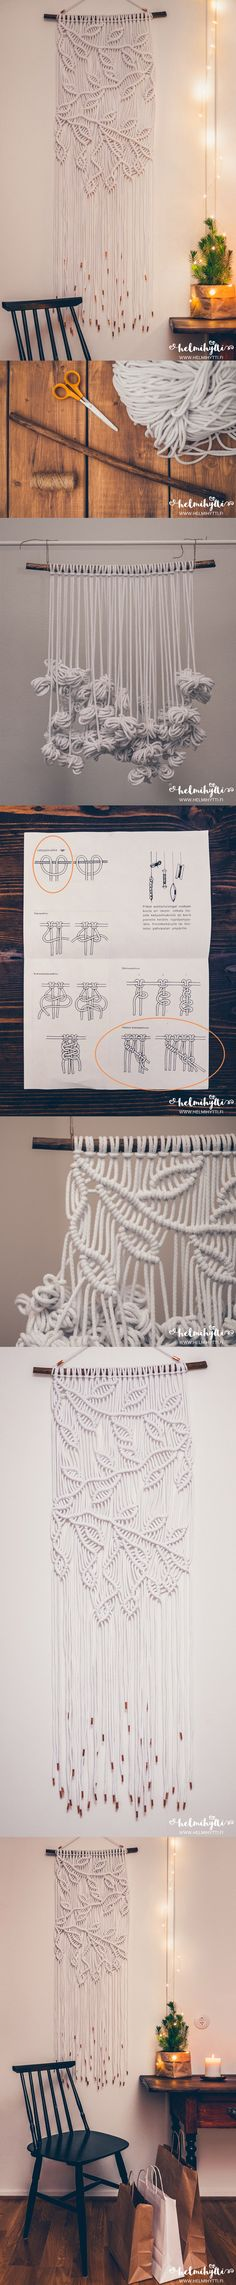 DIY macrame wall hanging with branch pattern tutorial. Only one knot type used! Copper tape at the ends of the yarn. This is smaller training version of my asymmetrical macrame kitchen curtain. Original blog post & instructions: http://www.helmihytti.fi/2016/12/adventtiluukku-diy-macrame-arvonta.html Handmade Makrame Wall Hanging Project Easy knots Boho home decor Bohemian decoration